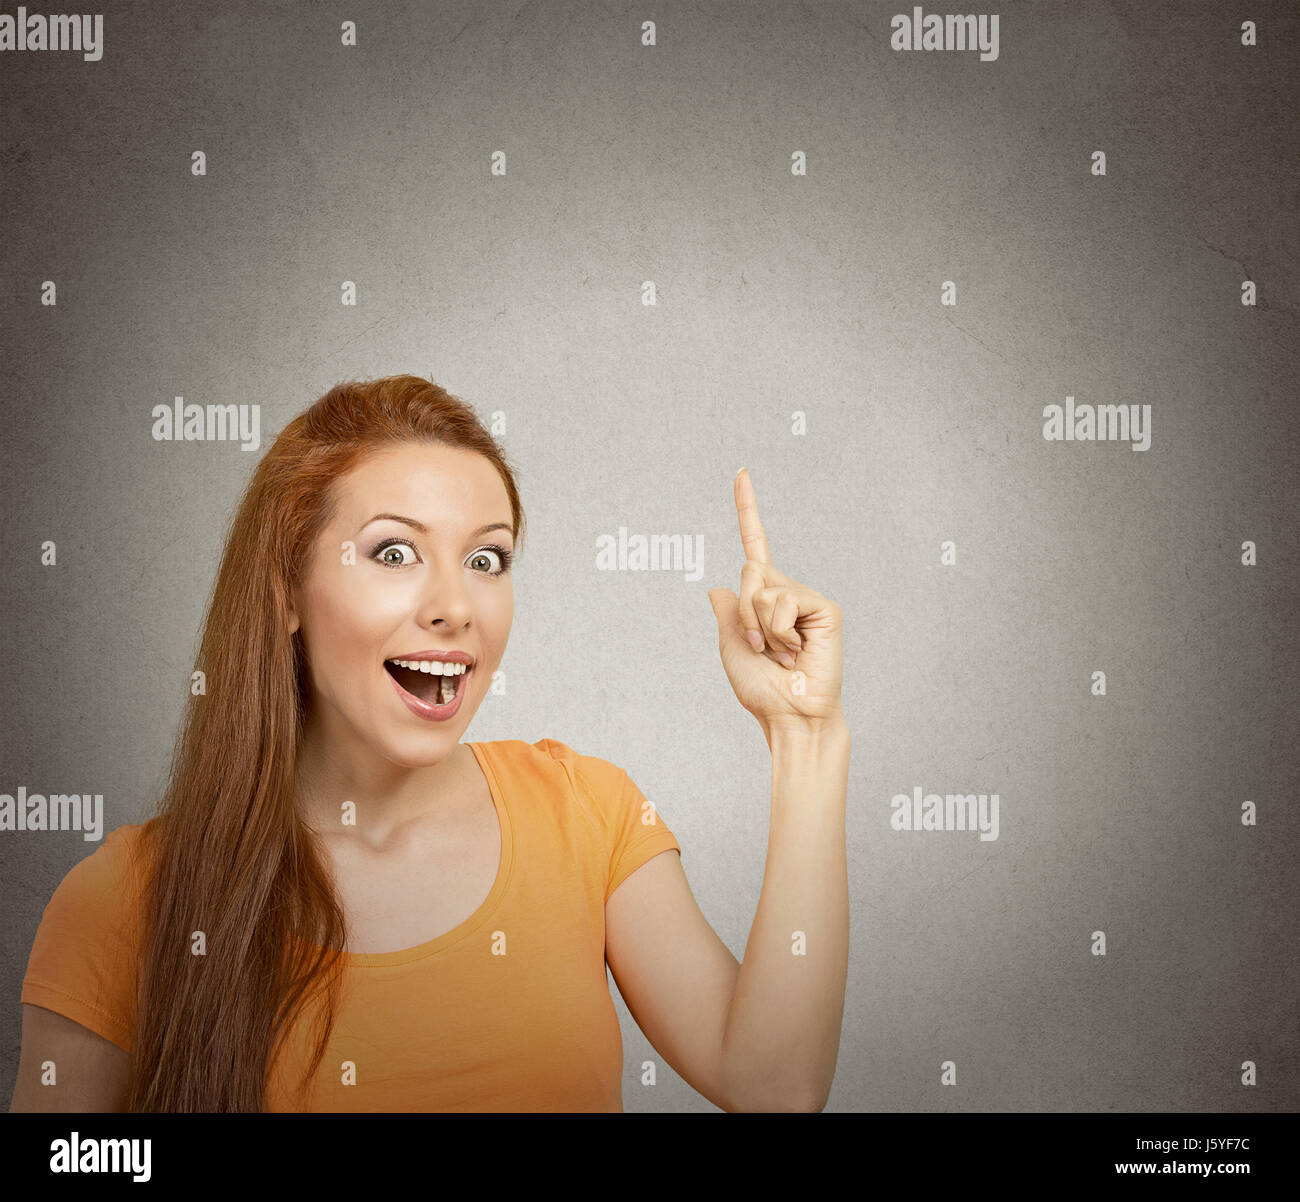 Closeup portrait intelligent excited young woman who just came up with idea aha isolated grey wall background with - Stock Image